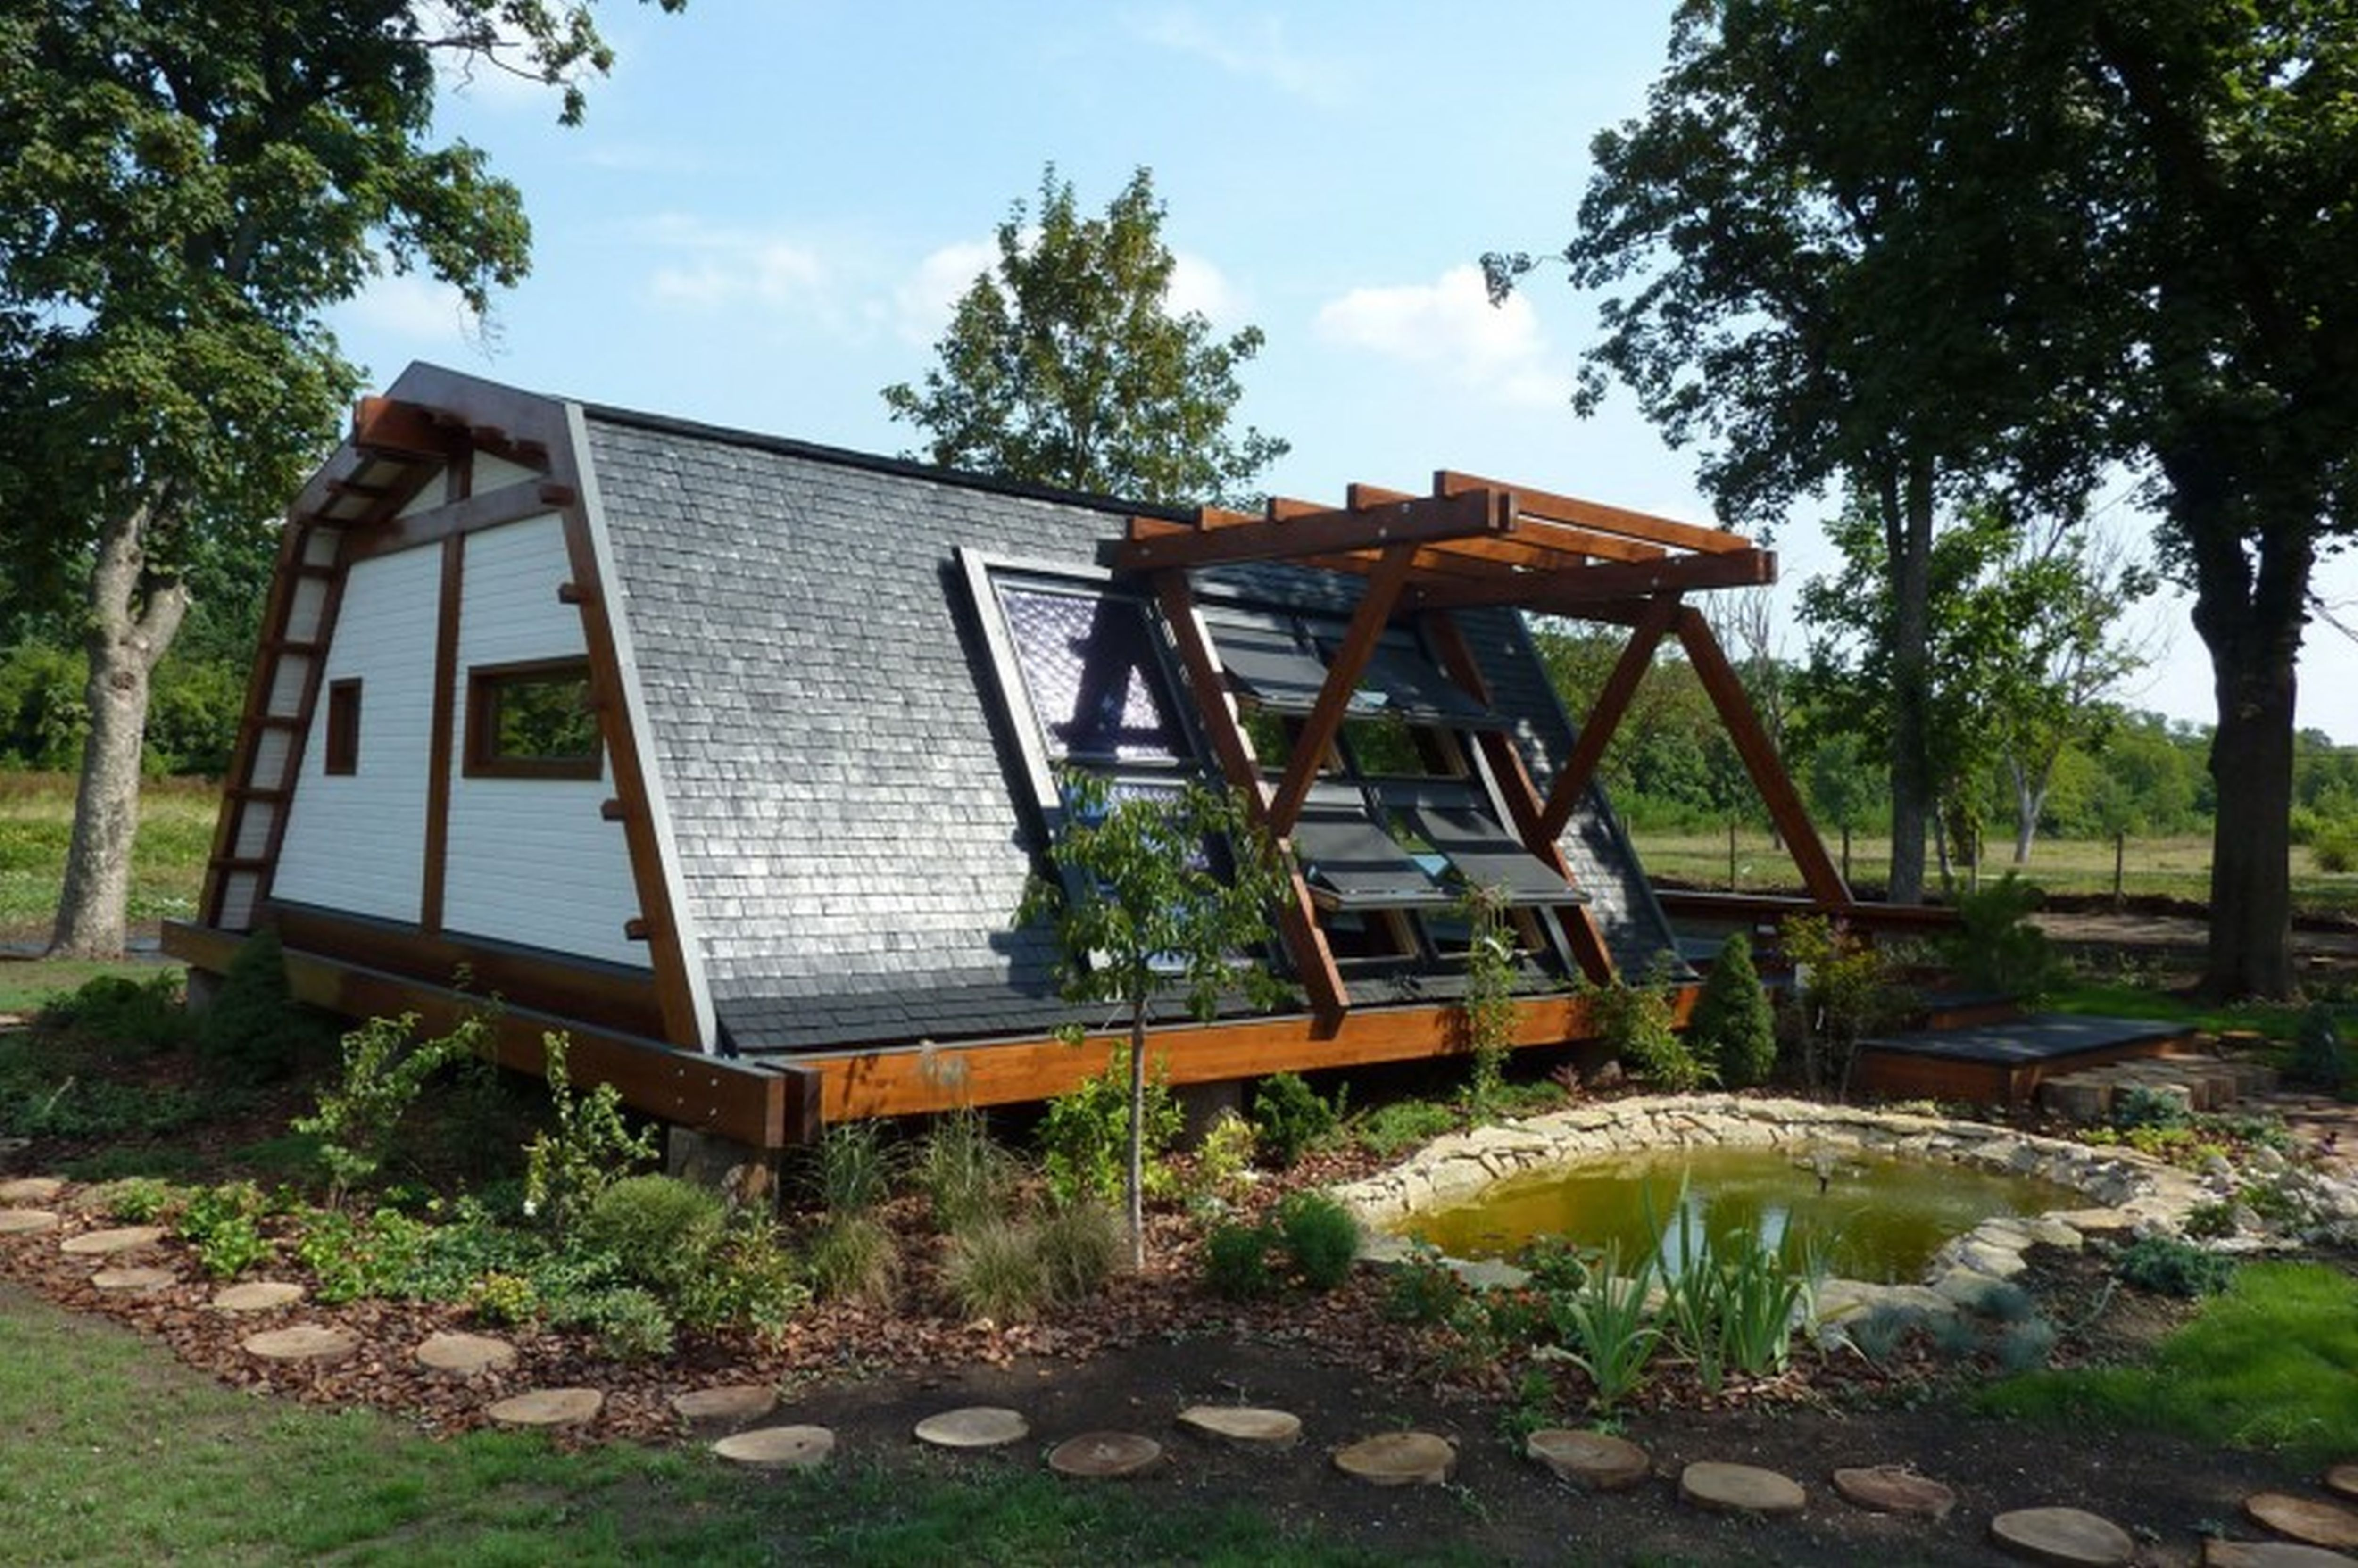 exterior tiny self sustainable home exterior tiny self sustainable